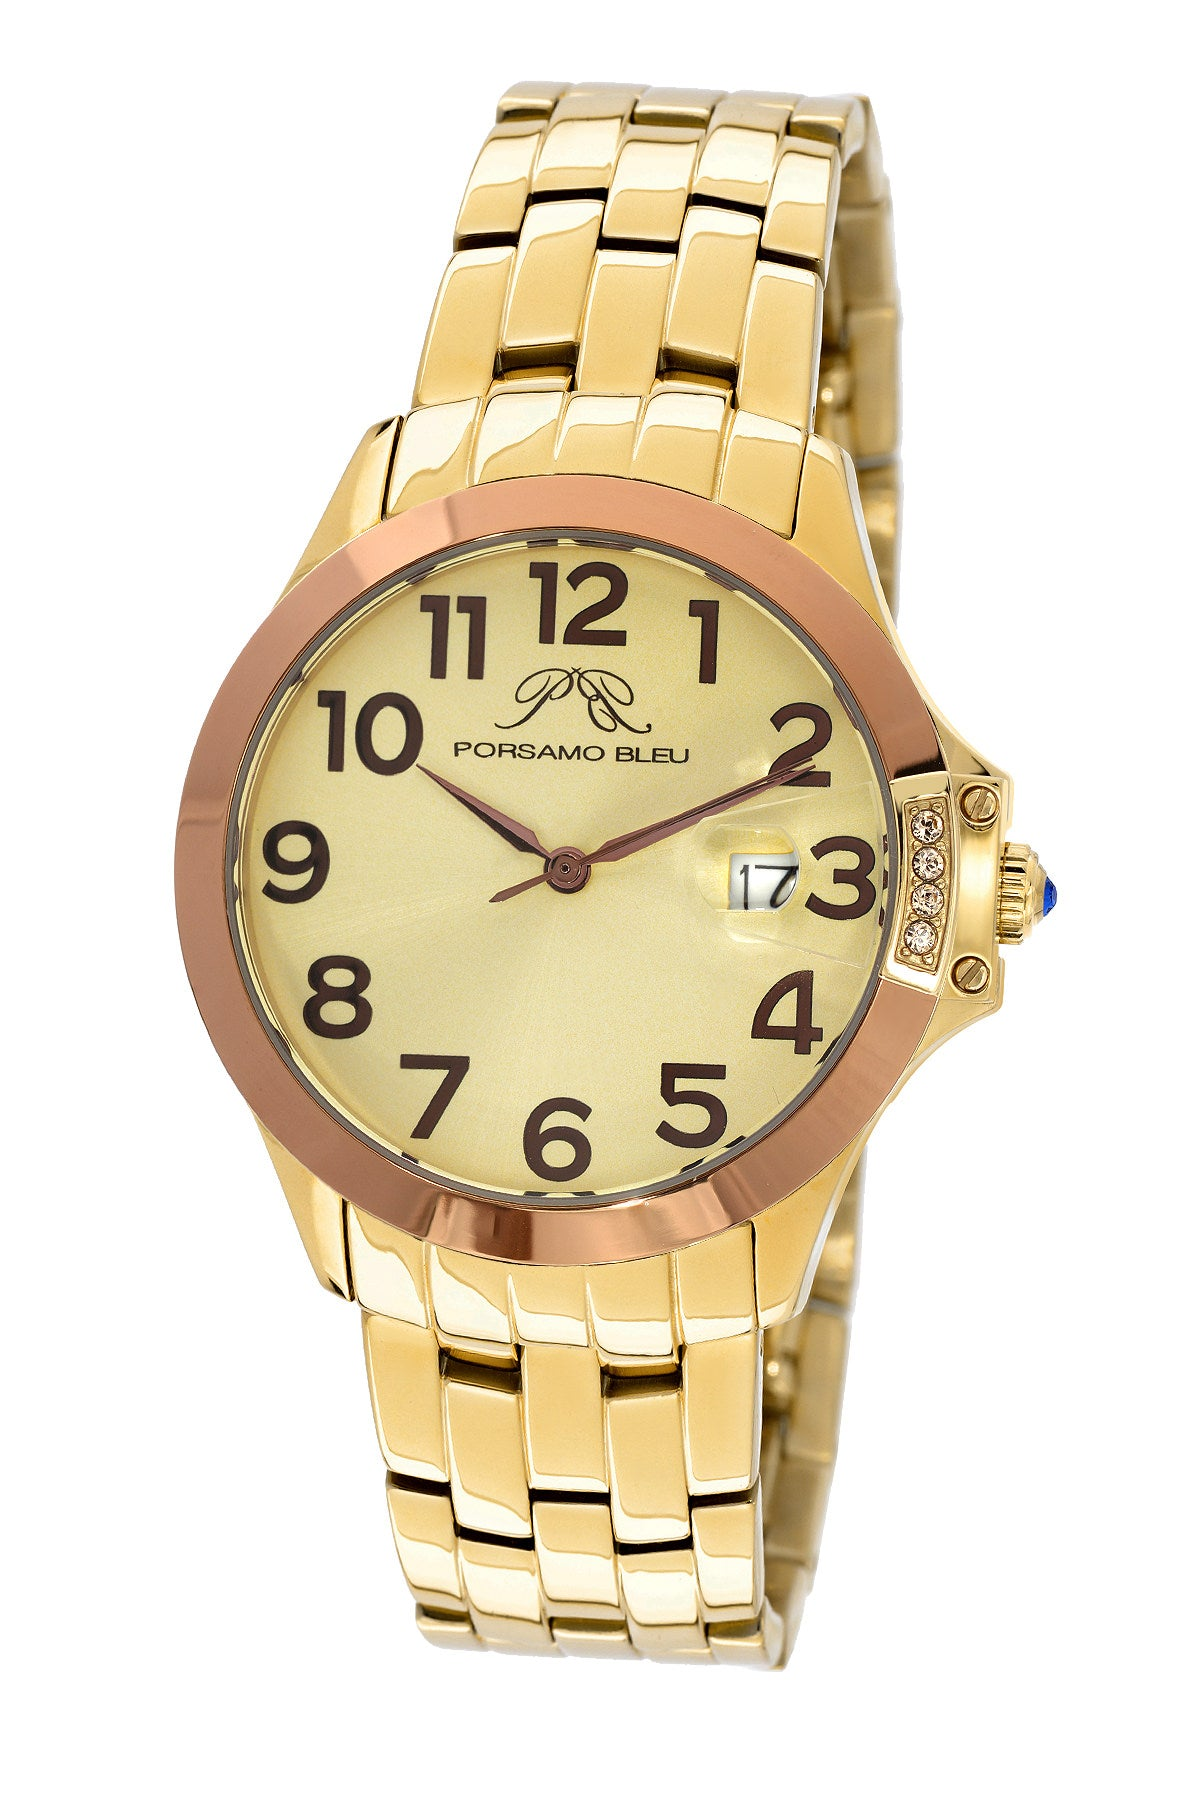 Porsamo Bleu Olivia luxury women's stainless steel watch, gold, rose 983AOLS